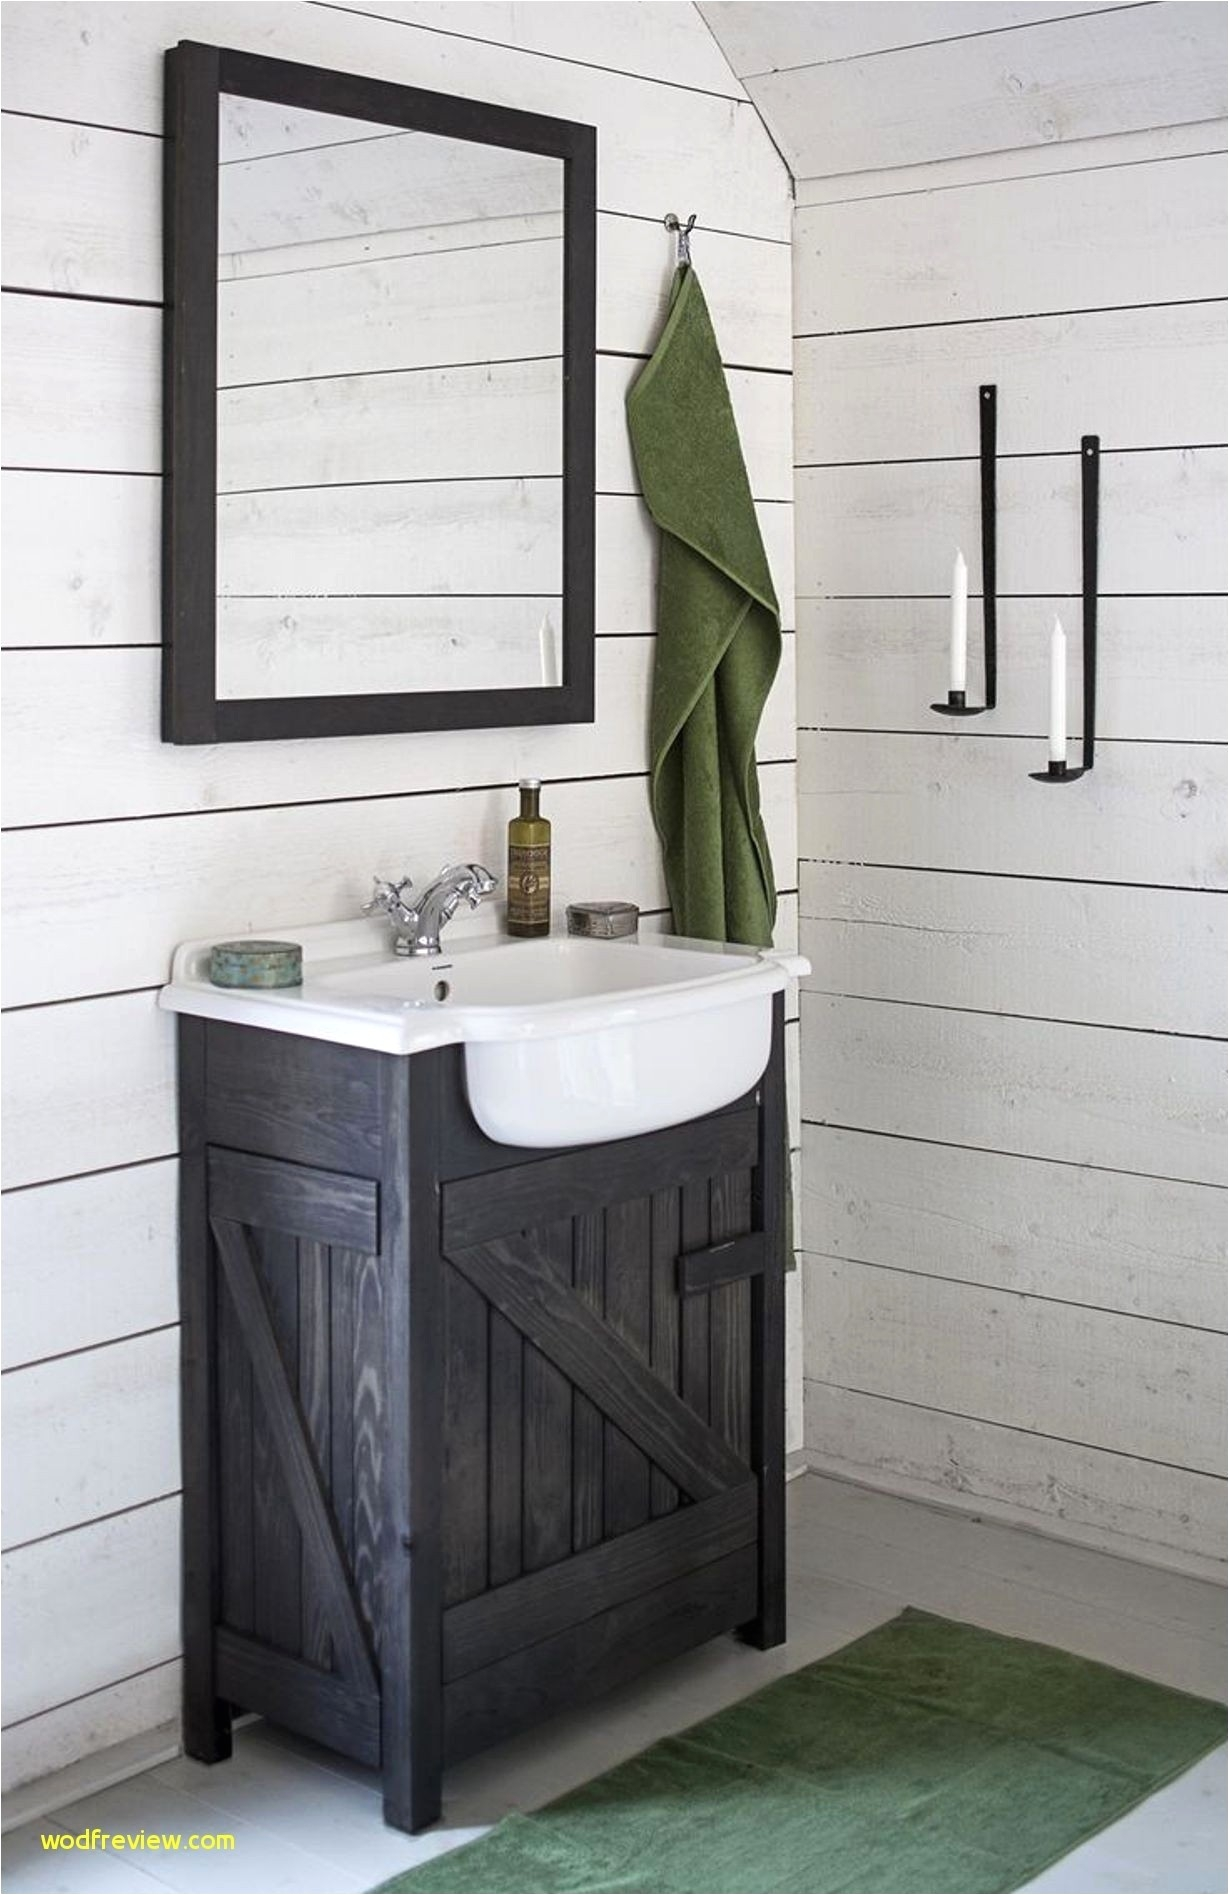 Girls Bathroom Design New Inspirational Bathroom Picture Ideas Lovely Tag Toilet Ideas 0d Best